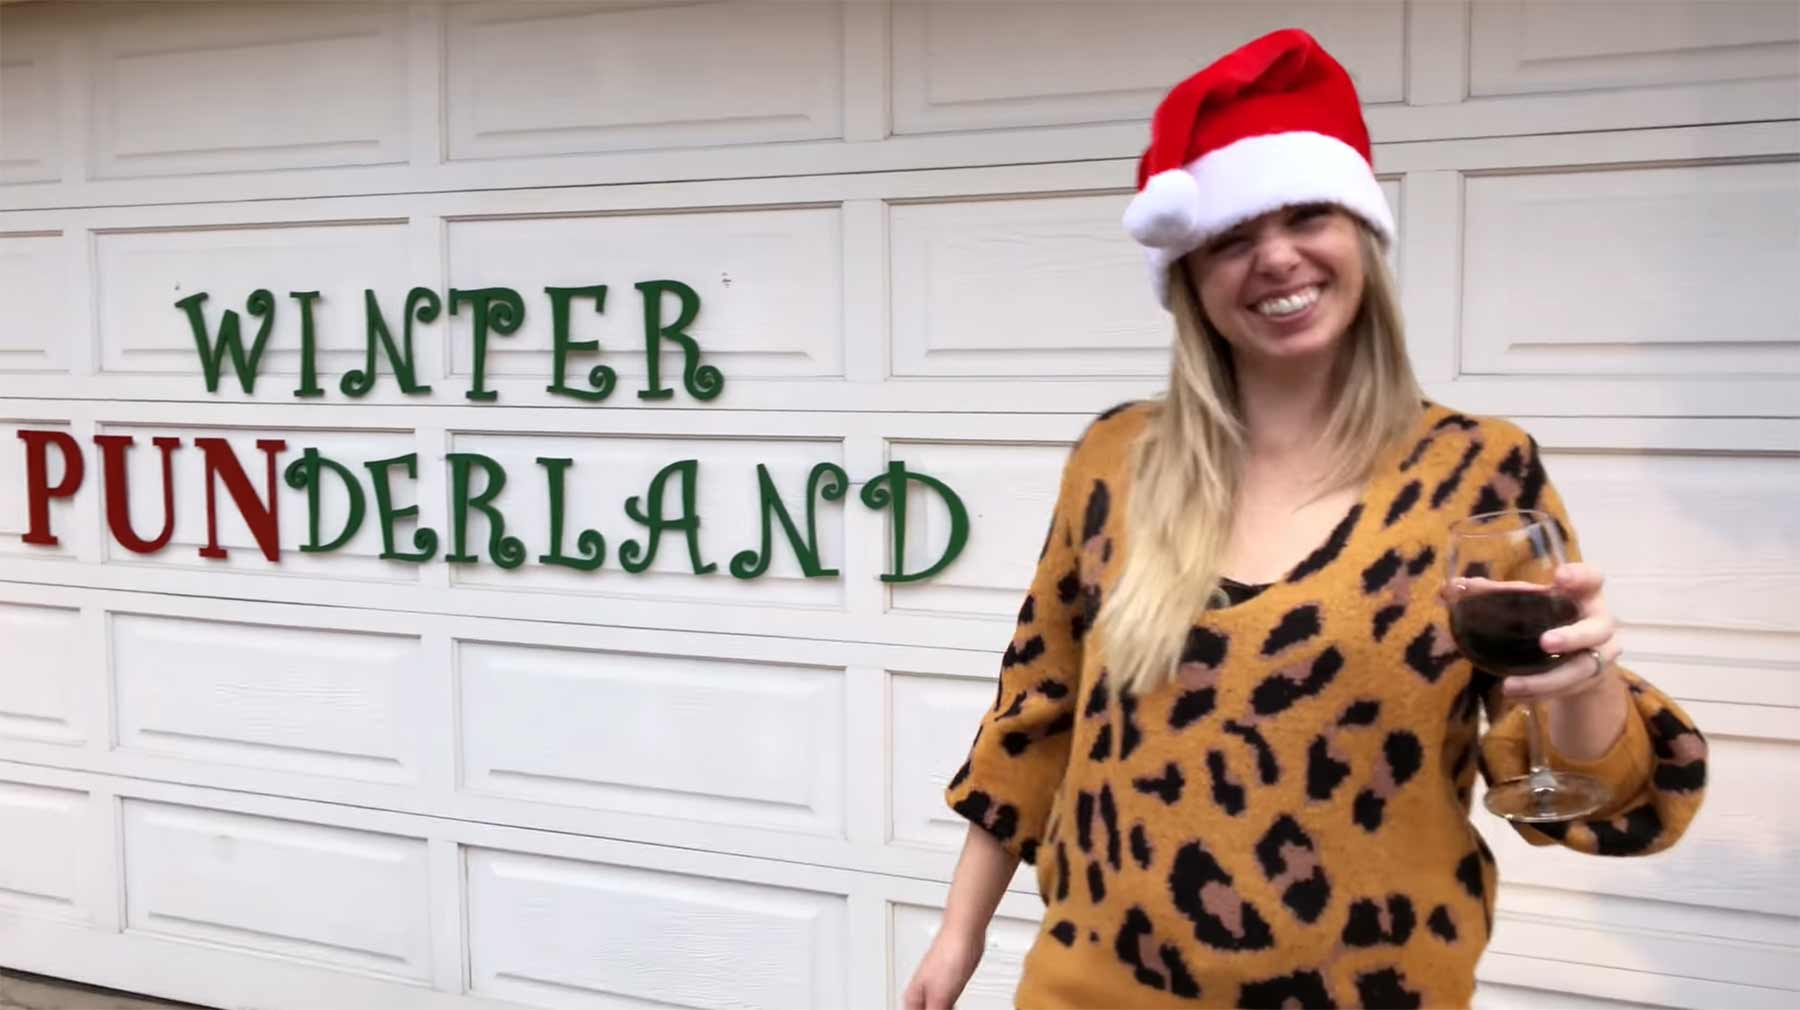 Christmas Punderland welcome-to-winterpunderland